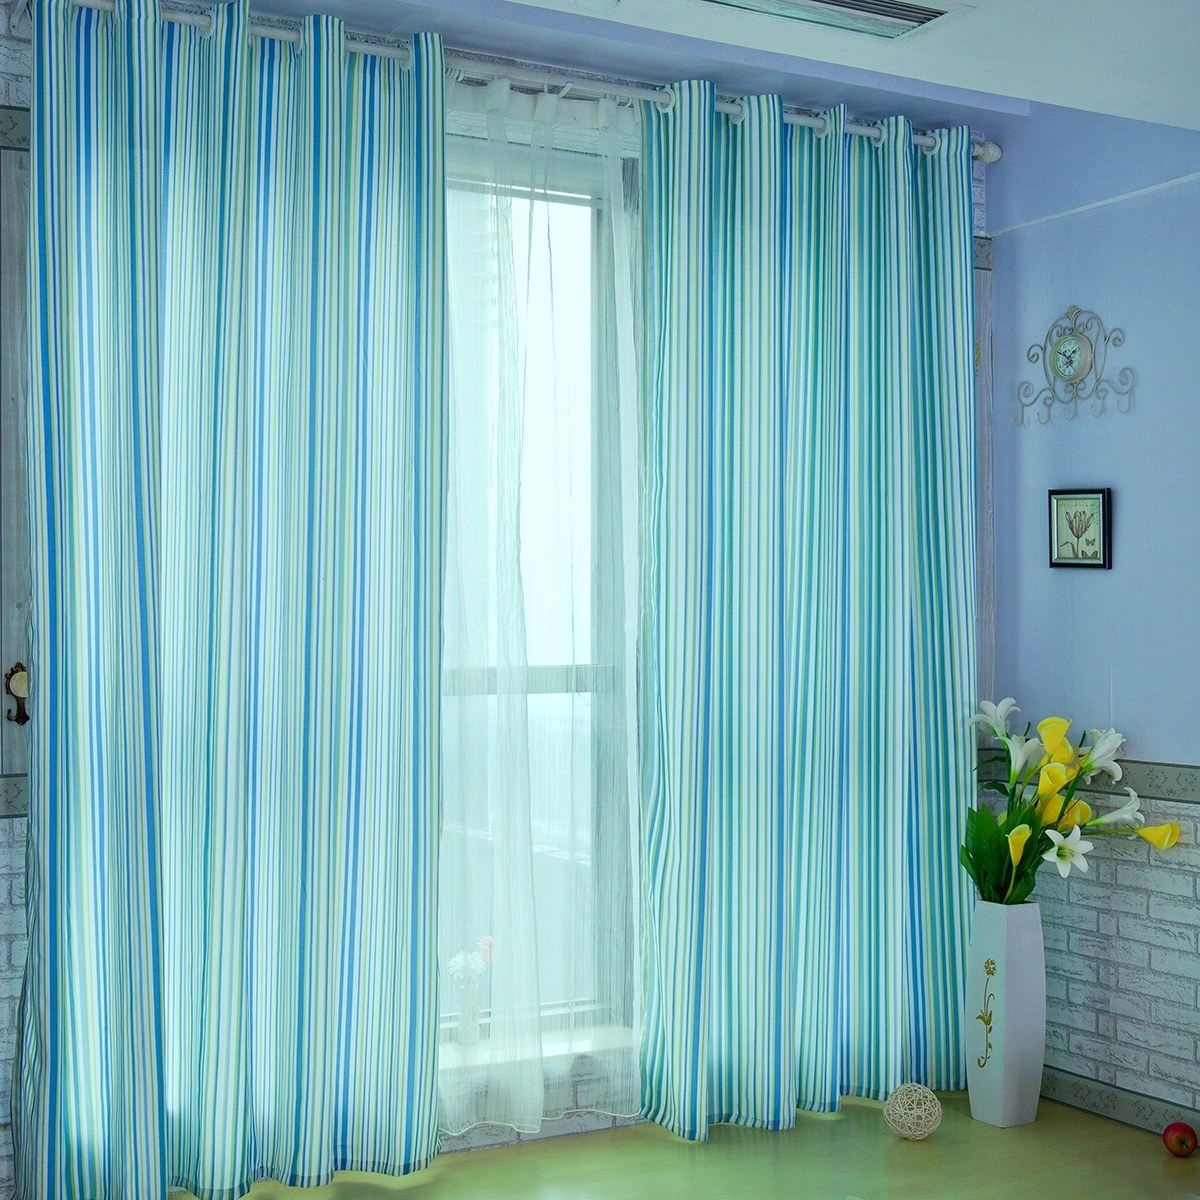 Featured Image of Blue Curtain Pattern